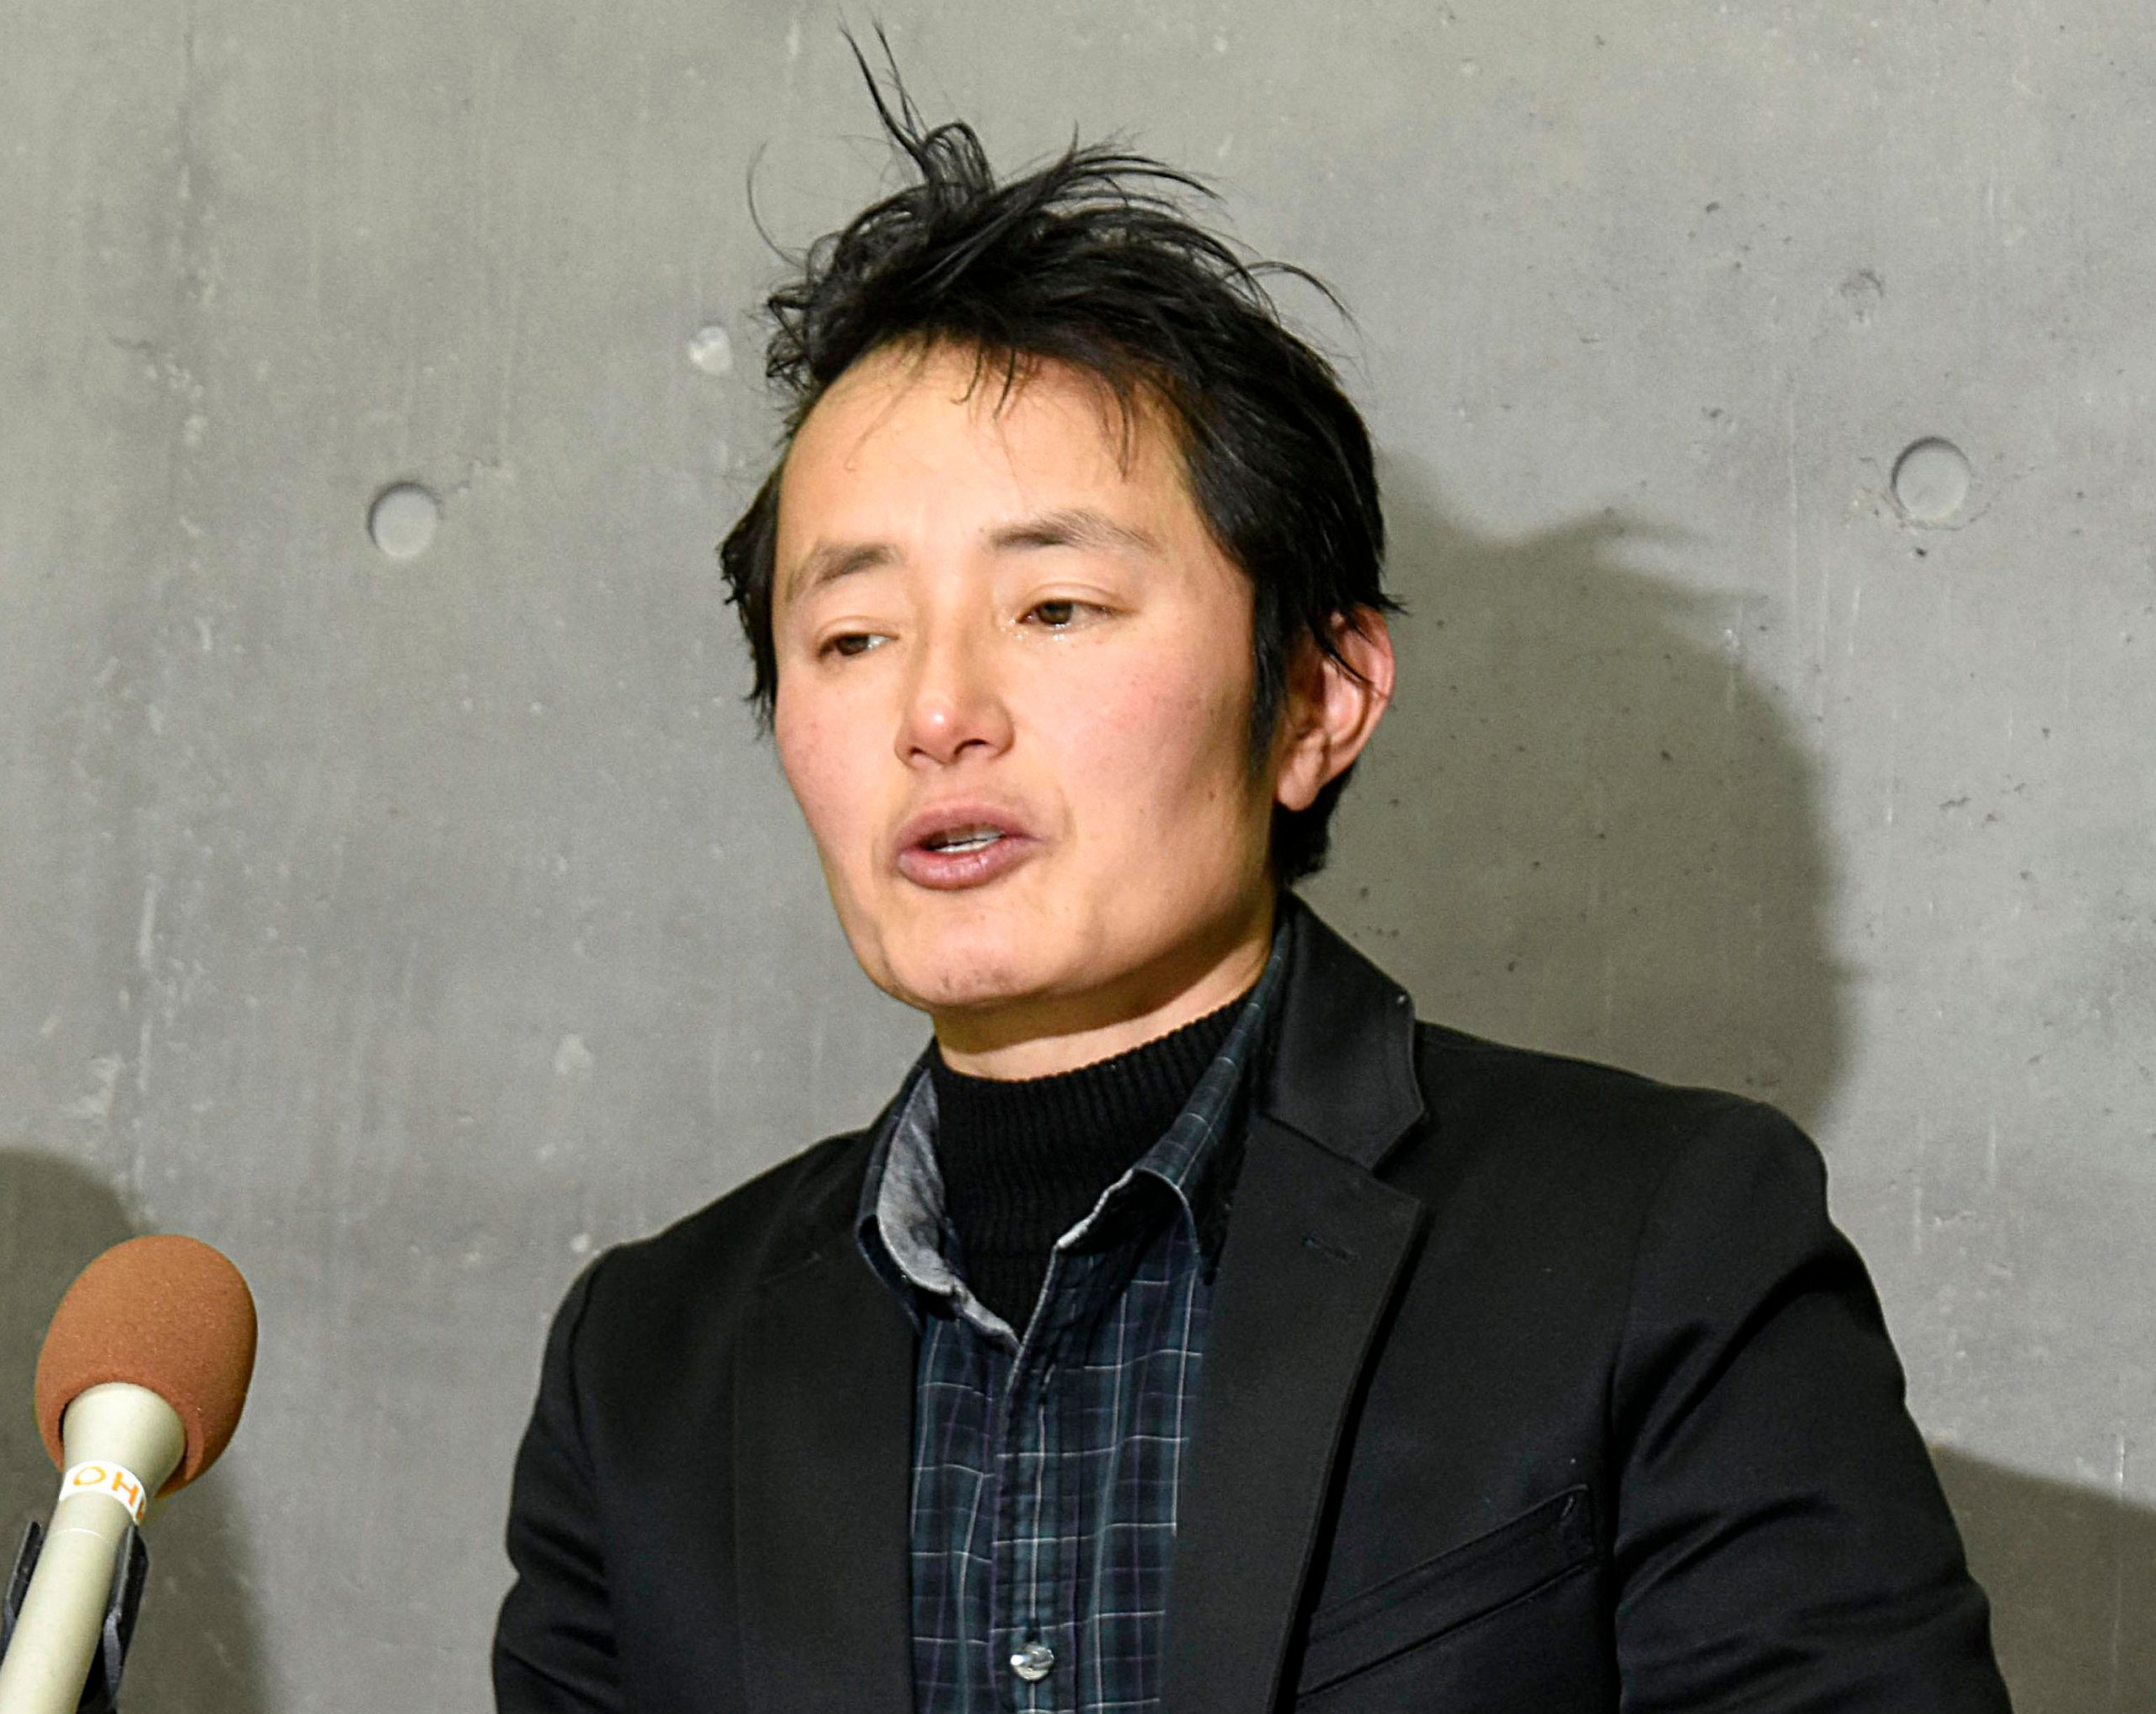 Takakito Usui appealed to Japan's Supreme Court in an effort to receive legal recognition as male without sterilization,